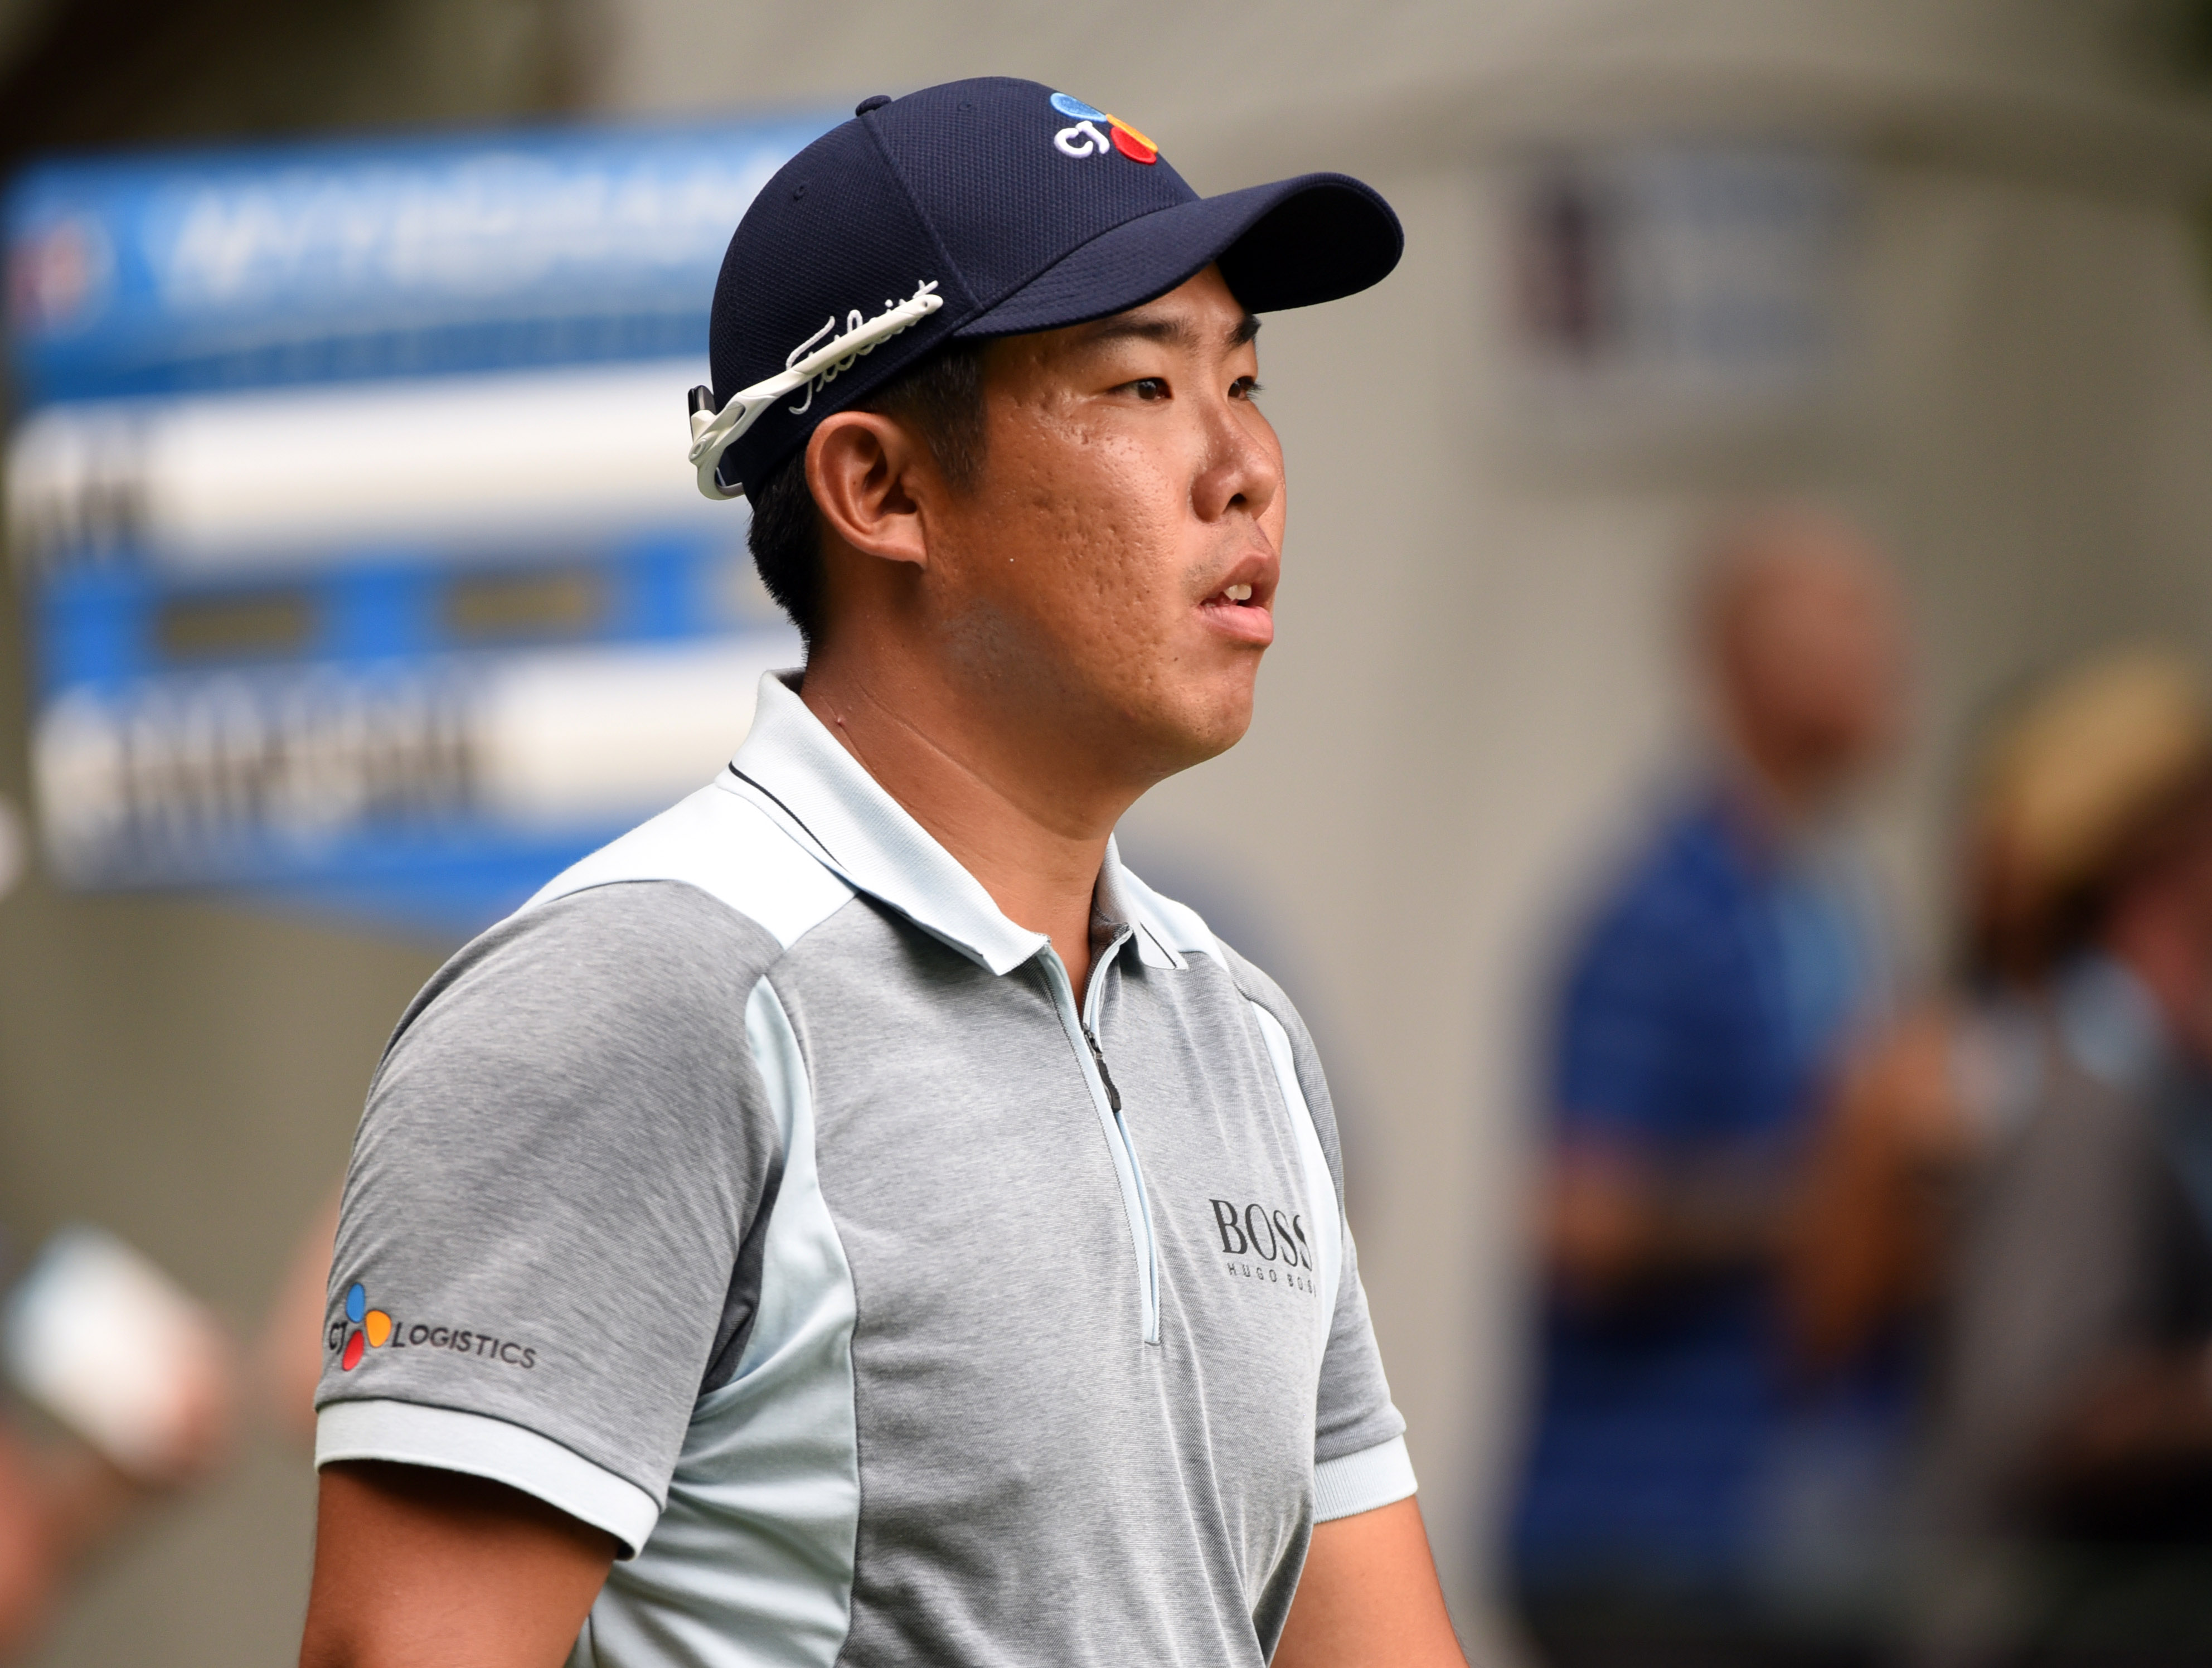 Byeong Hun An replaces Jason Day at the 2019 Presidents Cup